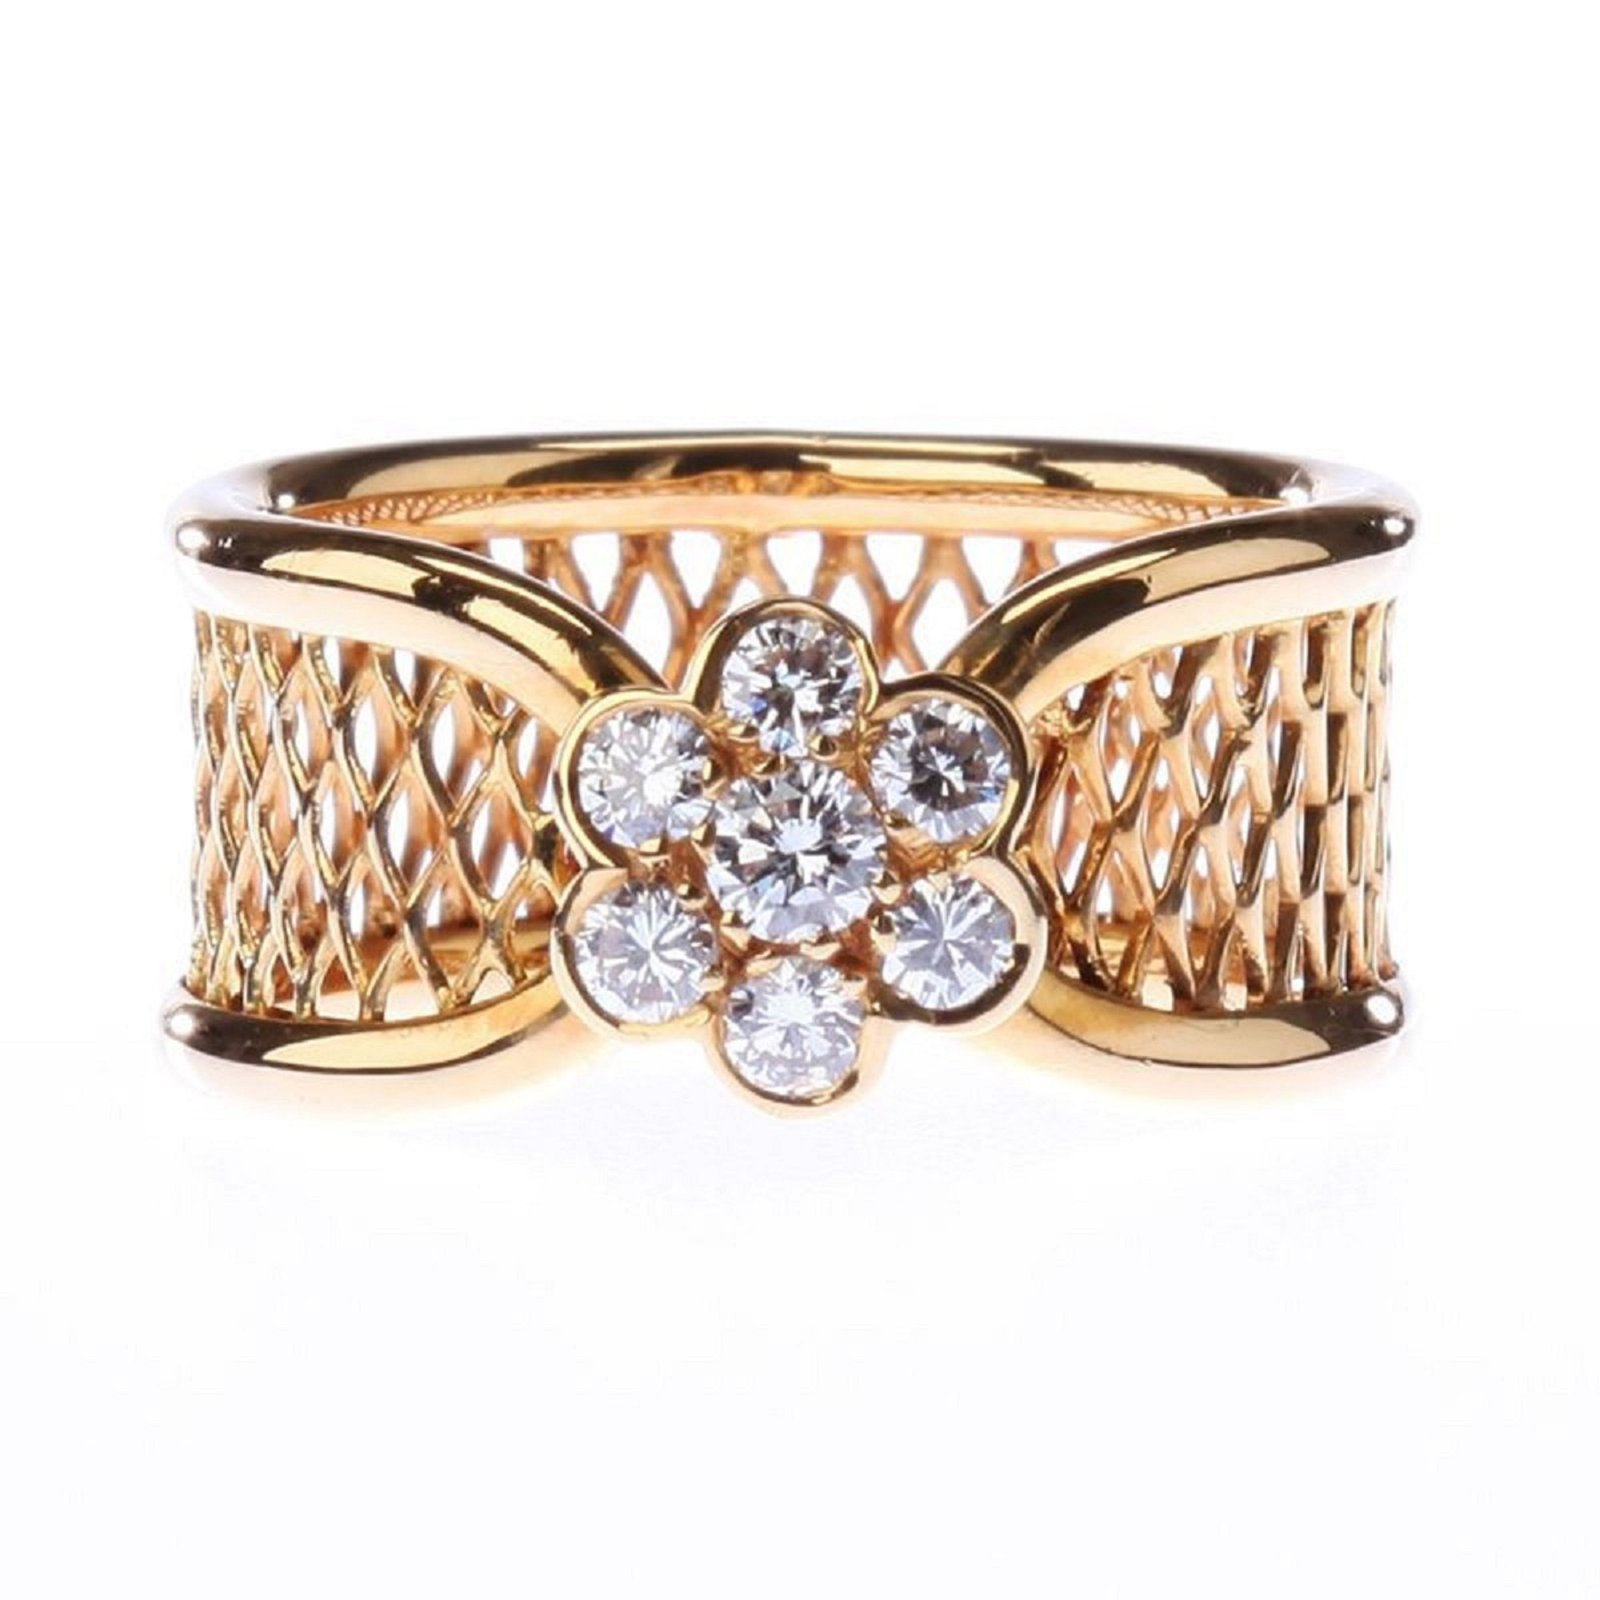 jewelry ring for j in id vca and basket rings arpels van as yellow at gold weave cleef band new l condition